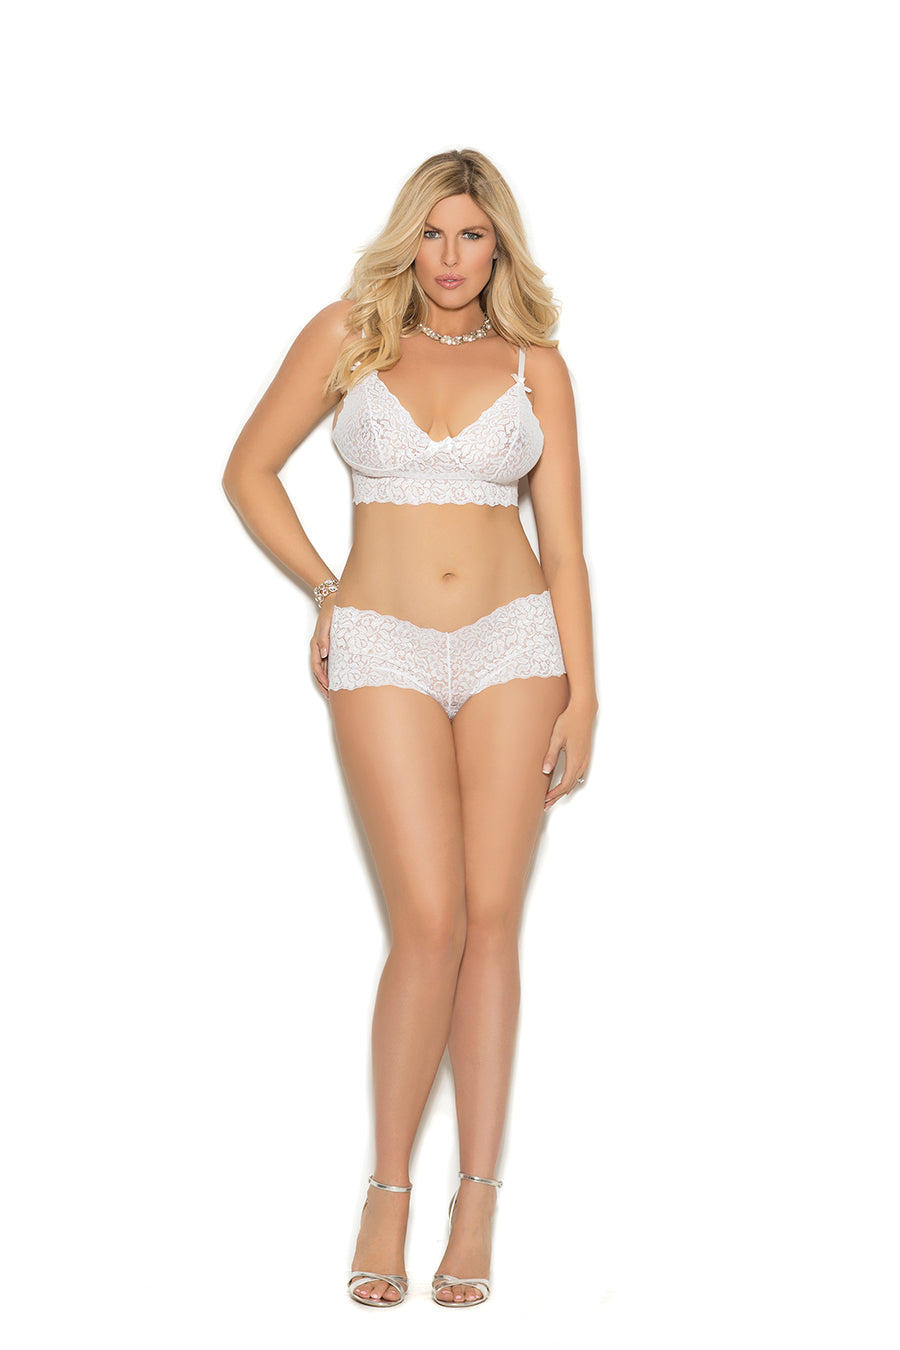 Plus Size Stretch Lace Booty Shorts With Matching Camisole - Comes In 2 Colors